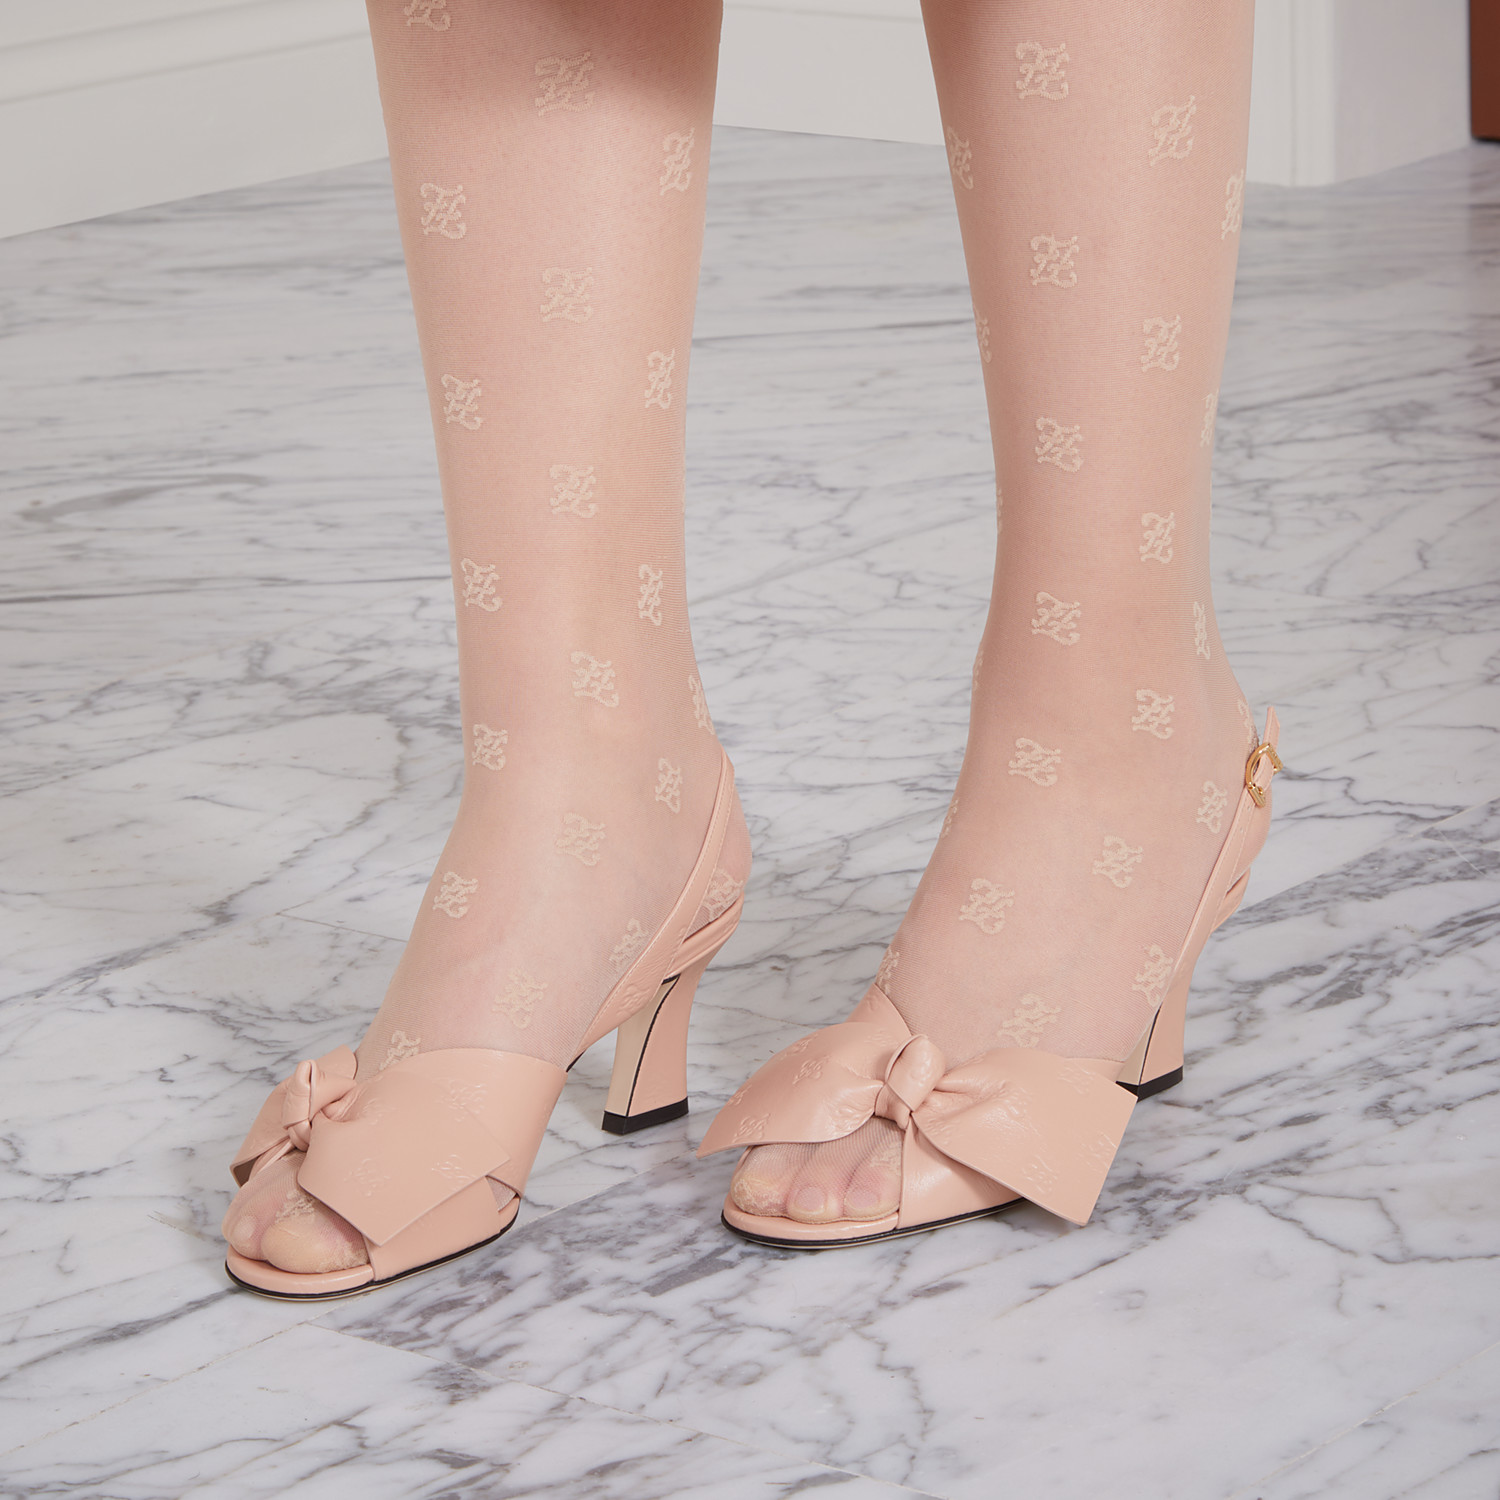 FENDI SANDALS - Pink leather sandals - view 5 detail